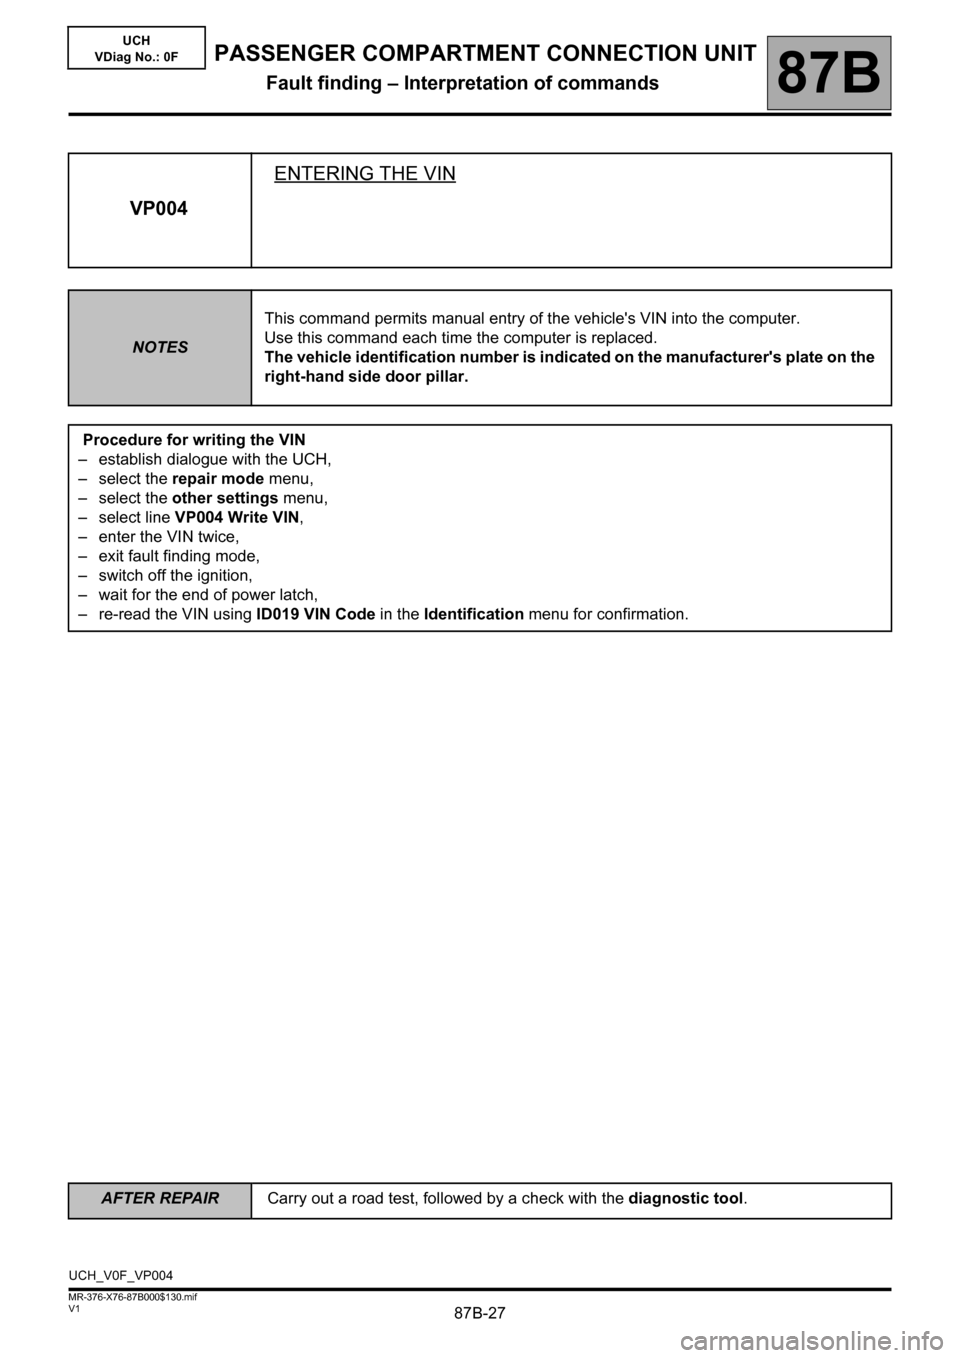 RENAULT KANGOO 2013 X61 / 2.G Passenger Comparment Connection Unit Workshop Manual, Page 27